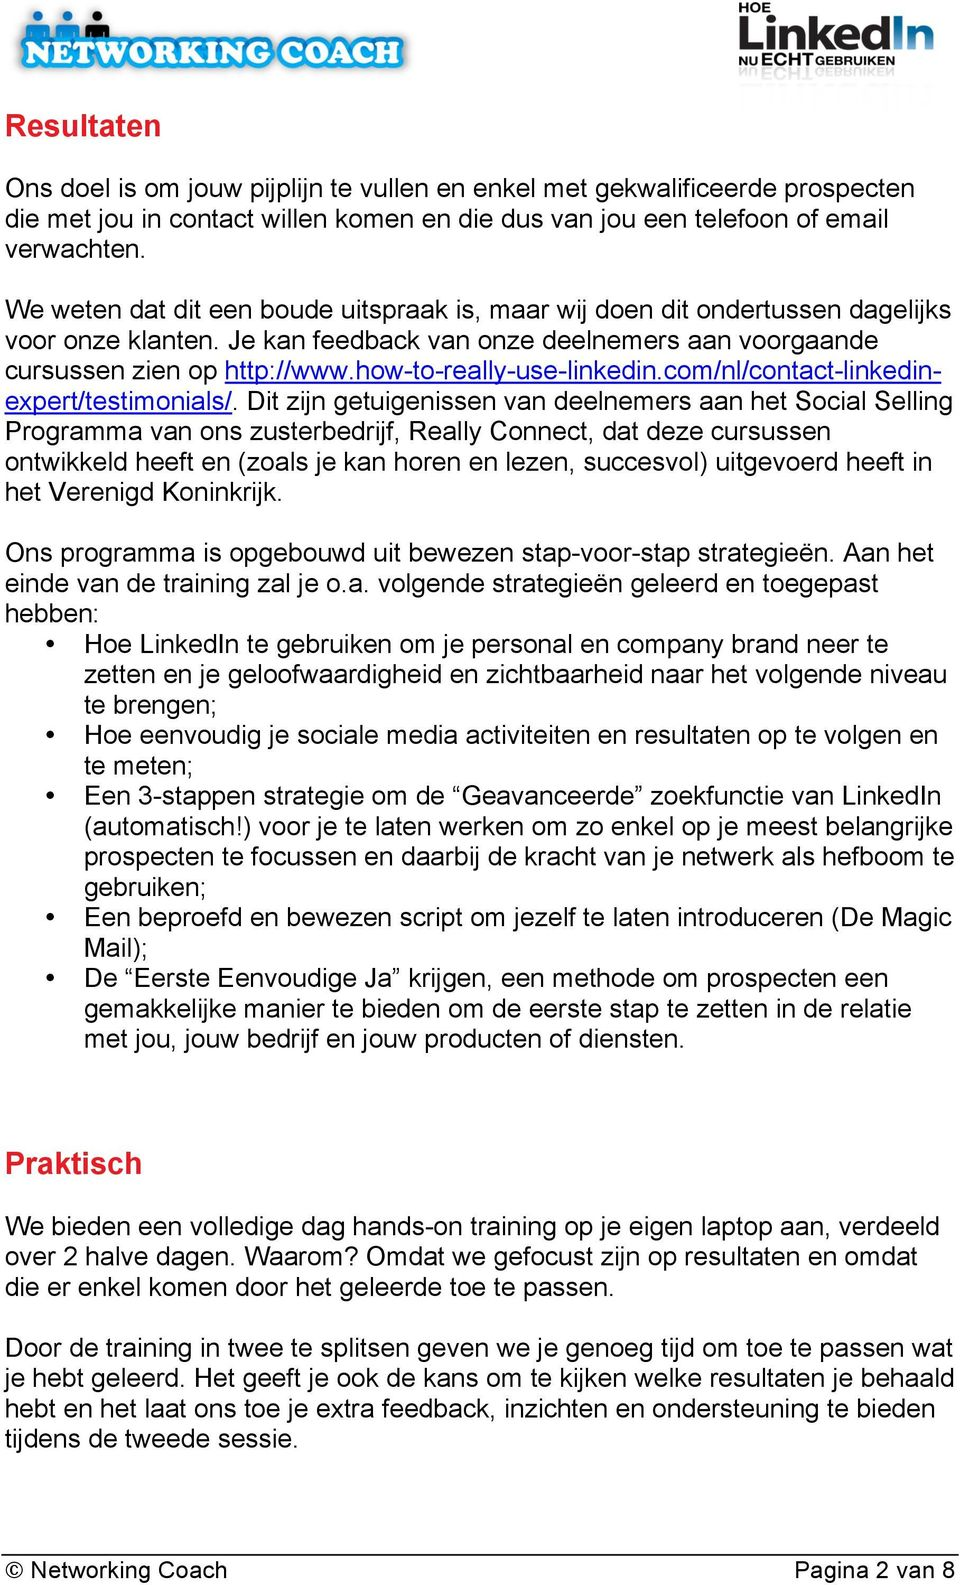 how-to-really-use-linkedin.com/nl/contact-linkedinexpert/testimonials/.